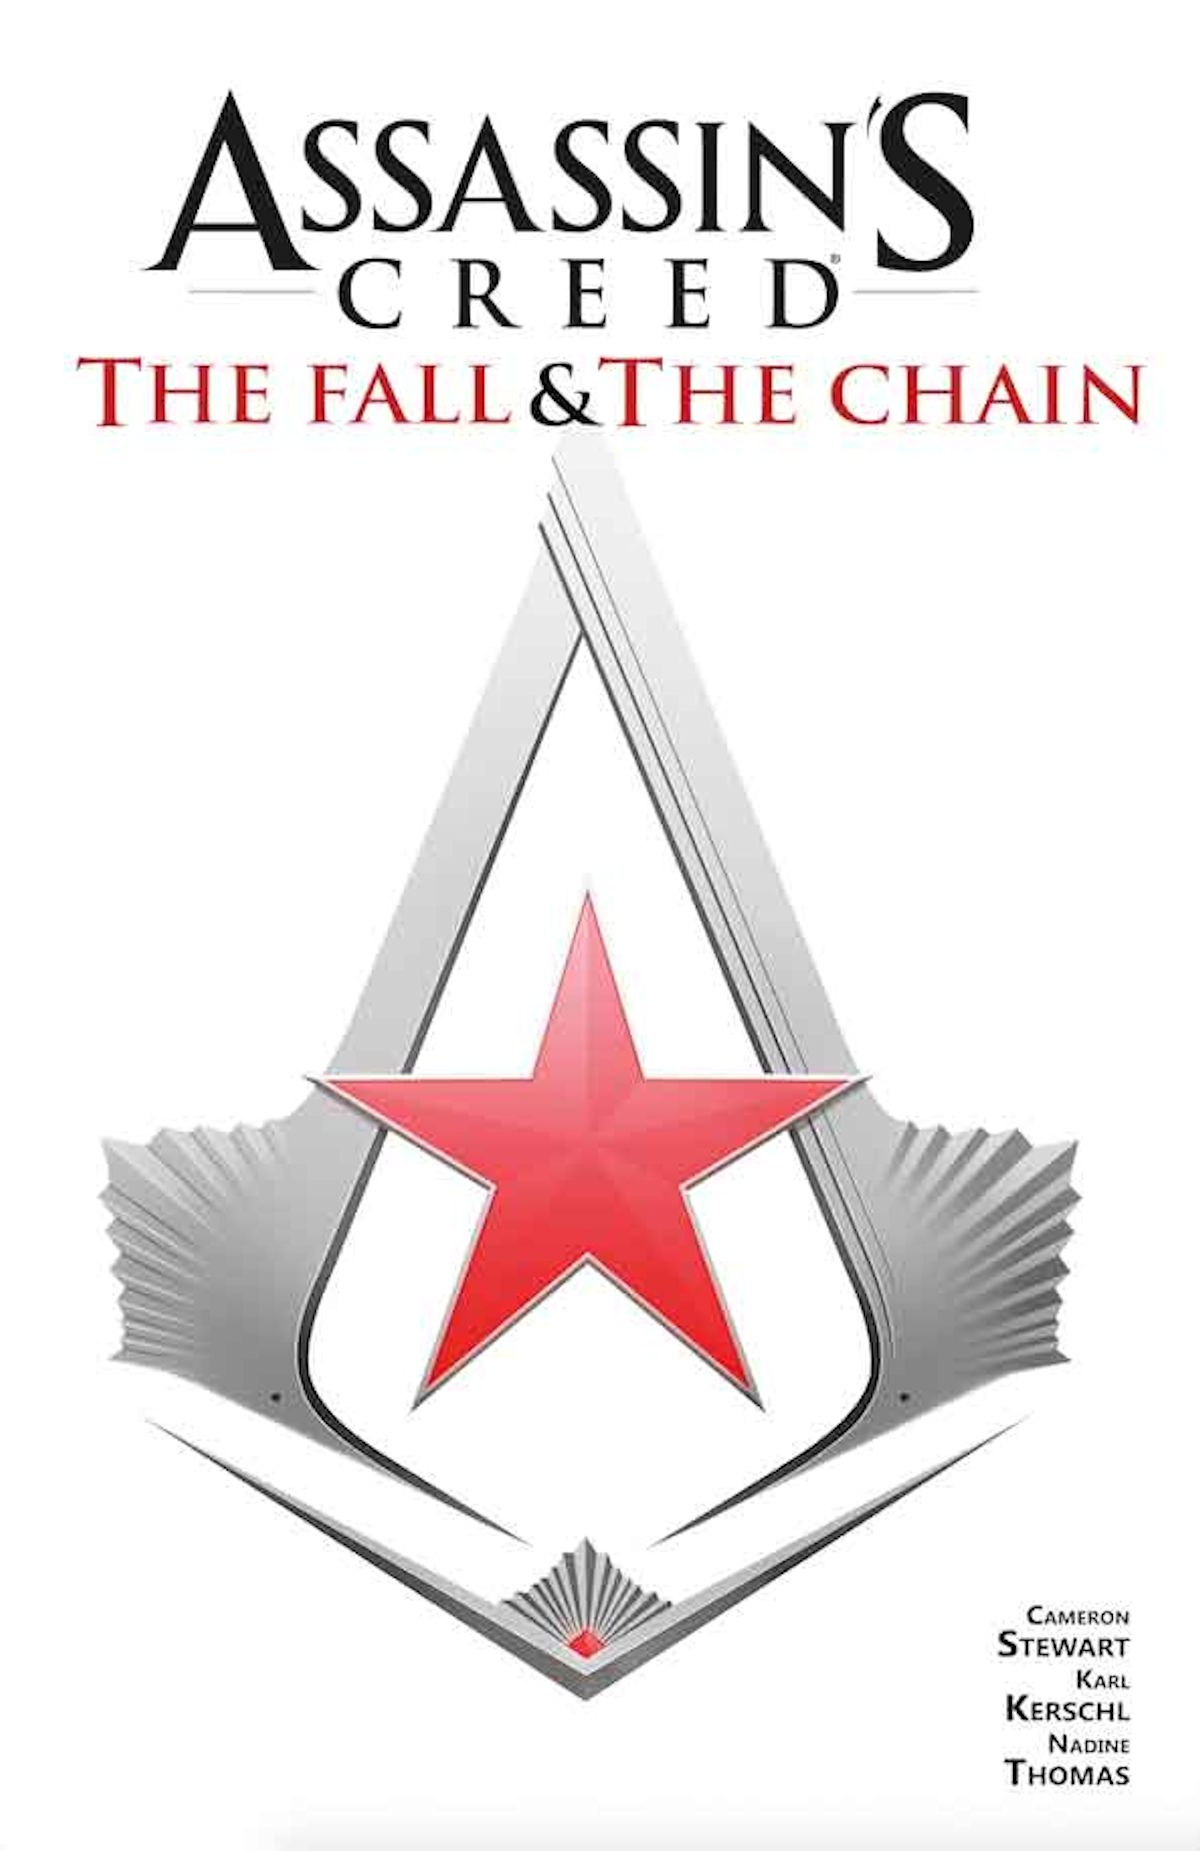 Assassins Creed: The Fall and The Chain (Graphic Novel)